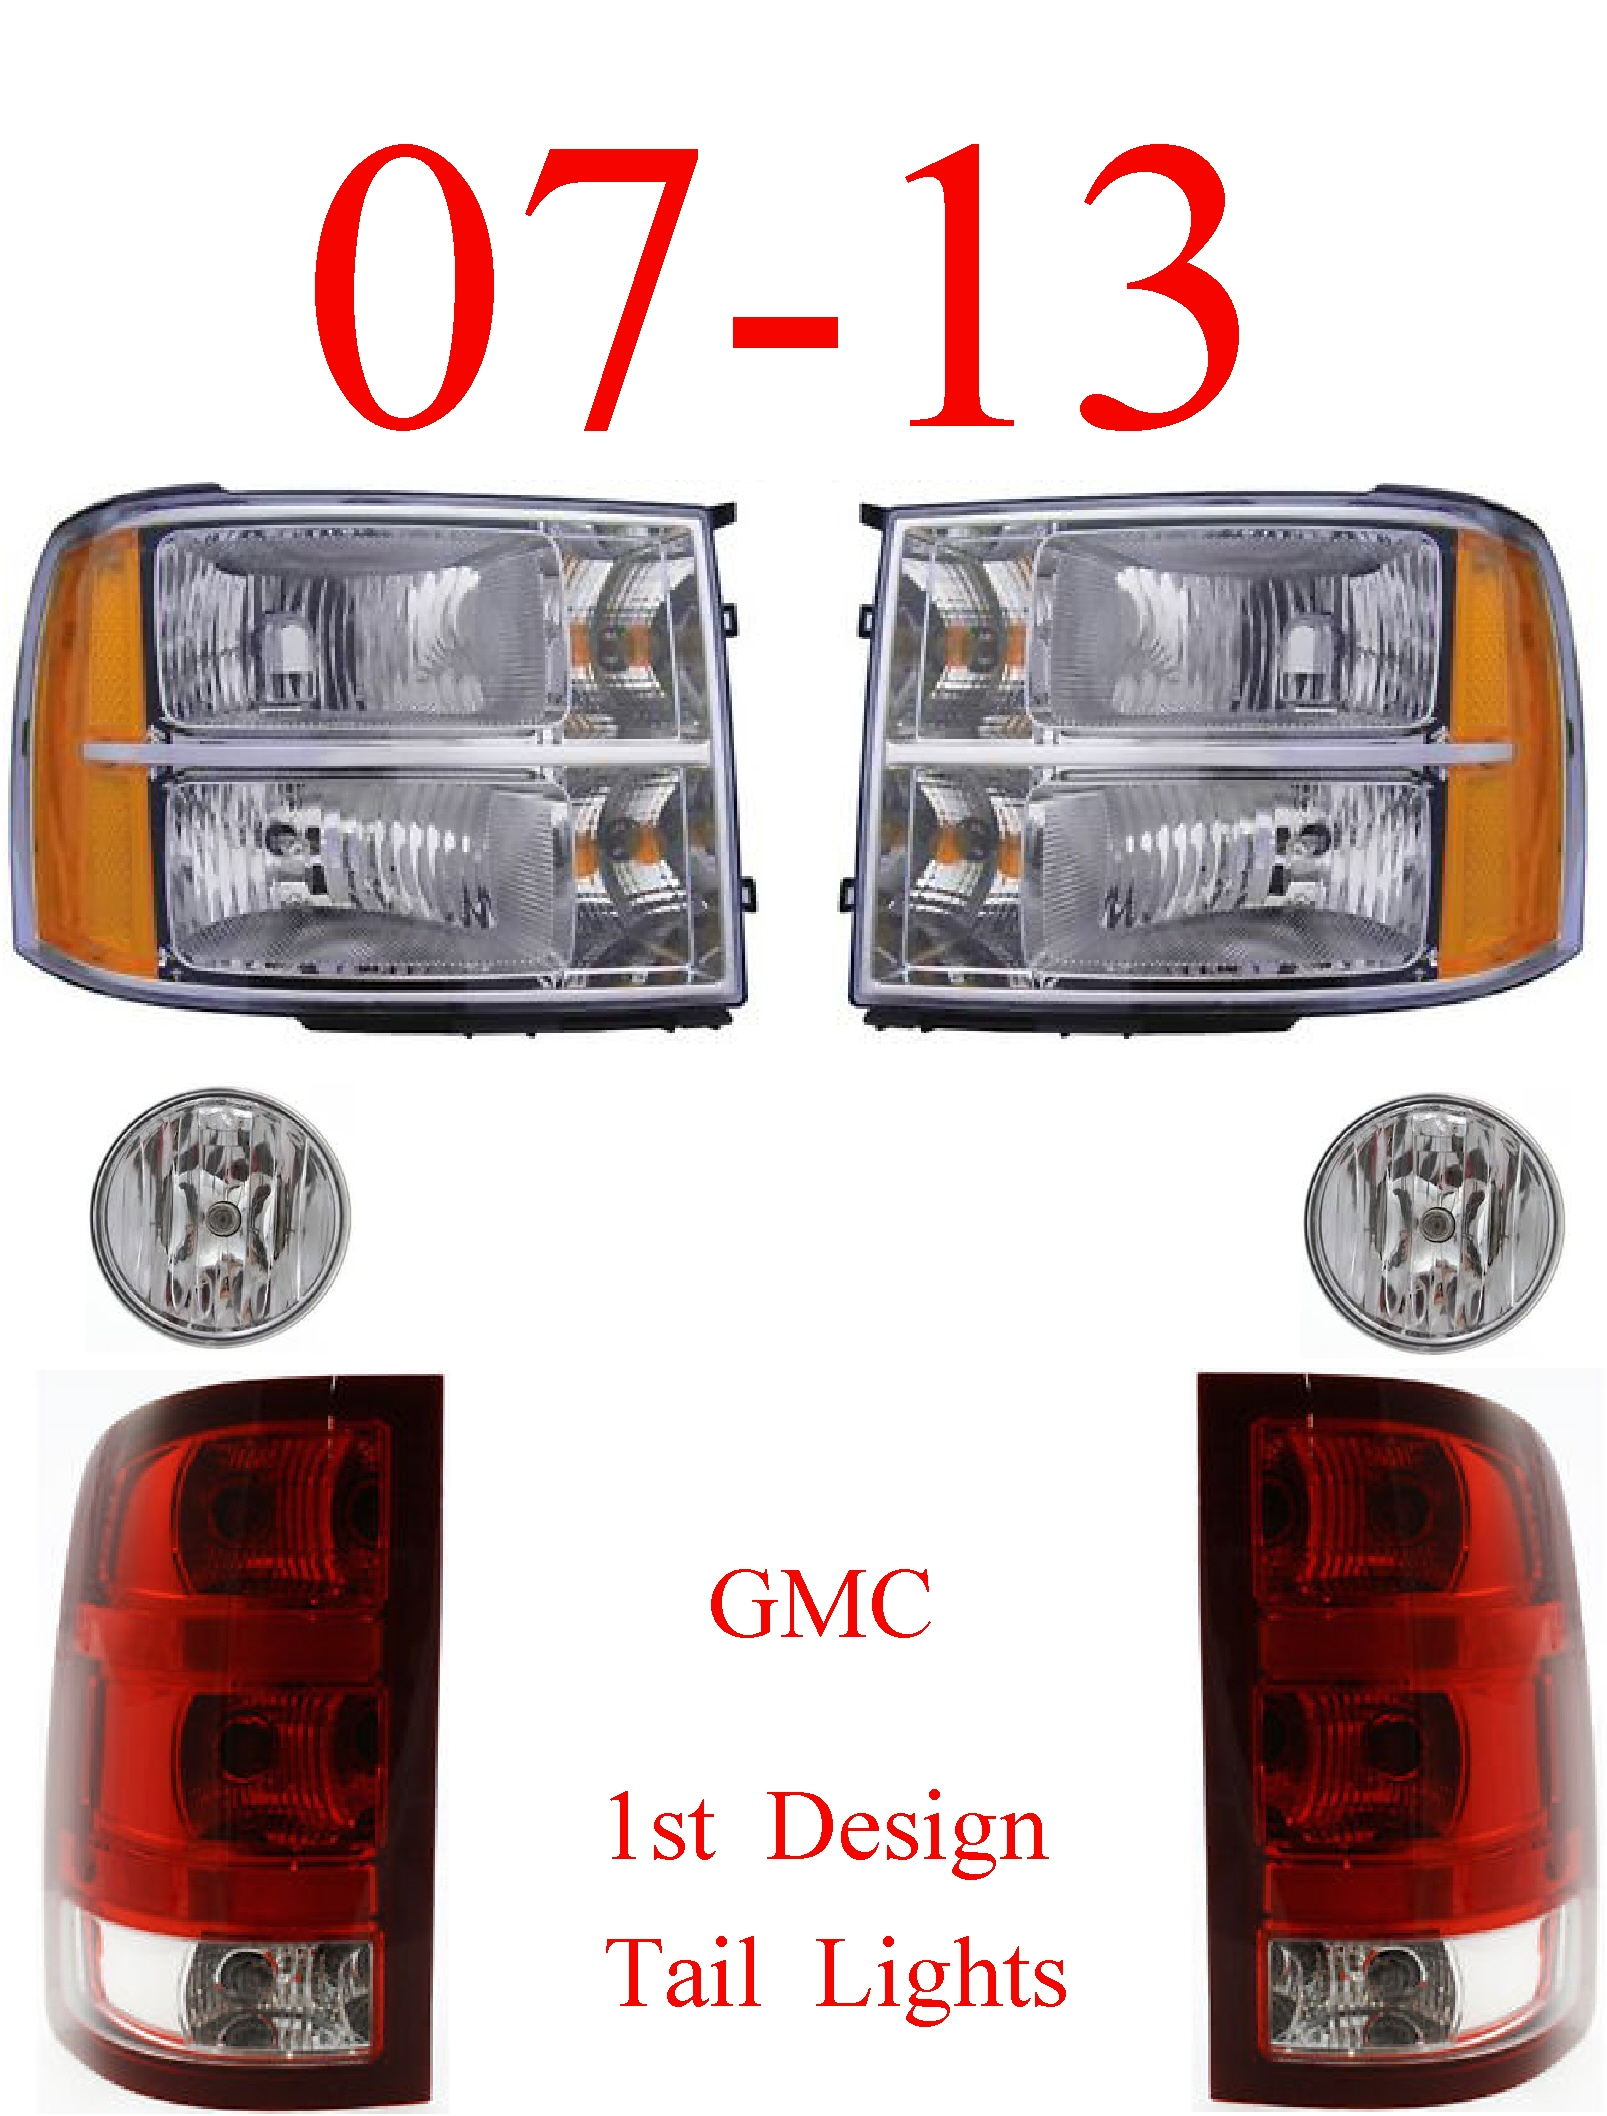 07-13 GMC 6Pc Head, Tail & Fog Light Kit, 1st Design